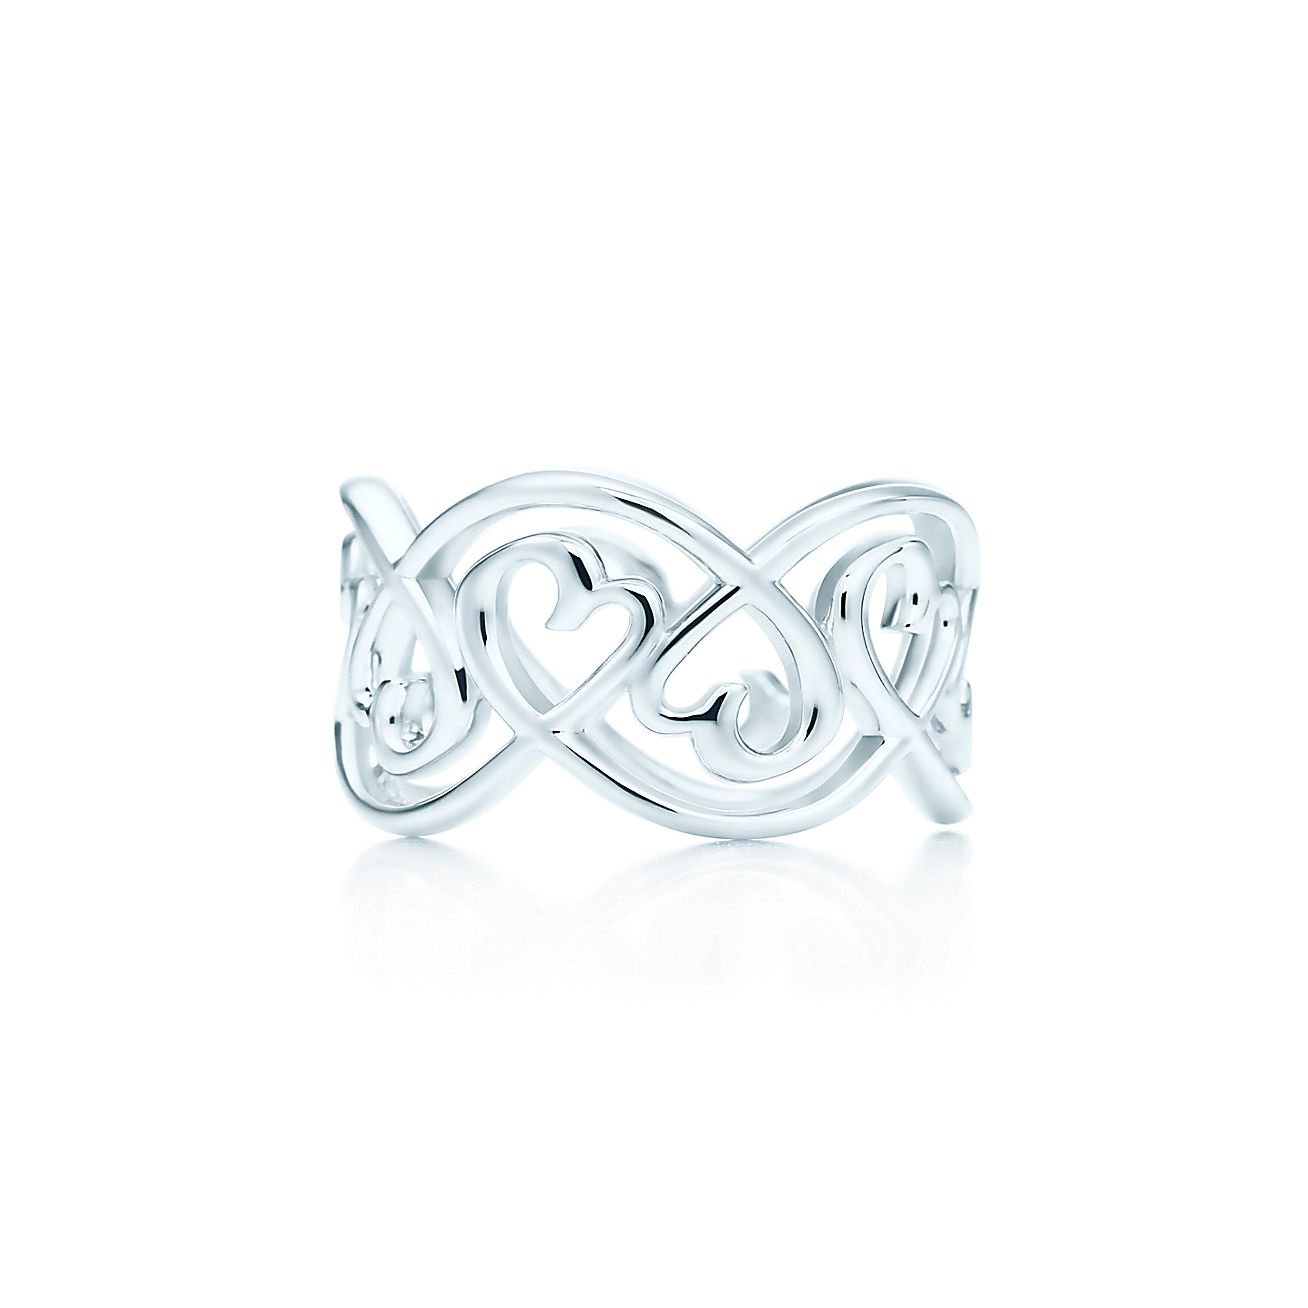 Jewelry Rings Paloma Picasso Loving Heart Swirl Band Ring Grp05476 Tiffany Rings Loving Heart